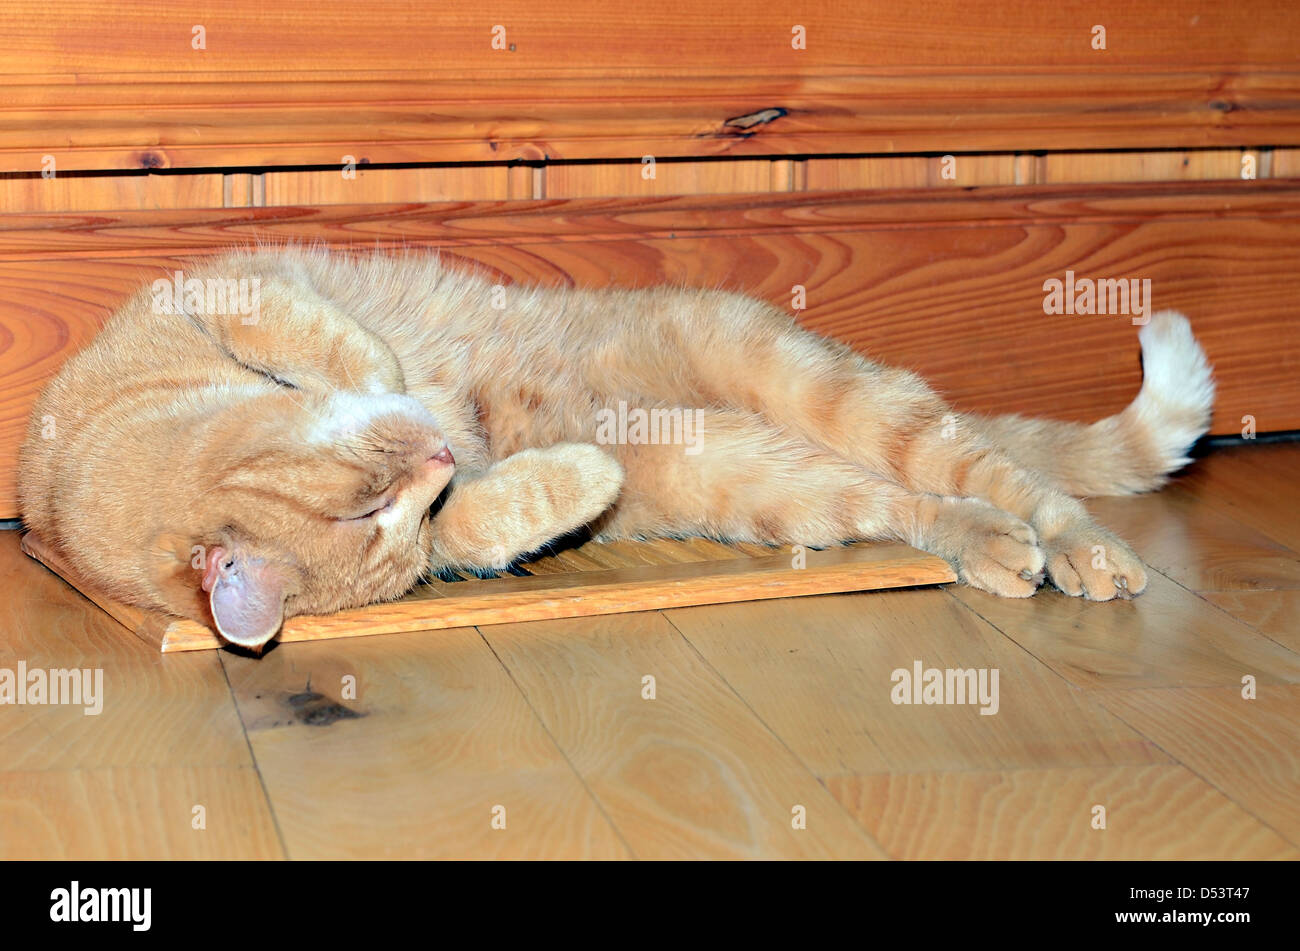 A beautiful orange tabby cat sleeping on a wooden heater vent. It's important for all colors to match when decorating - Stock Image